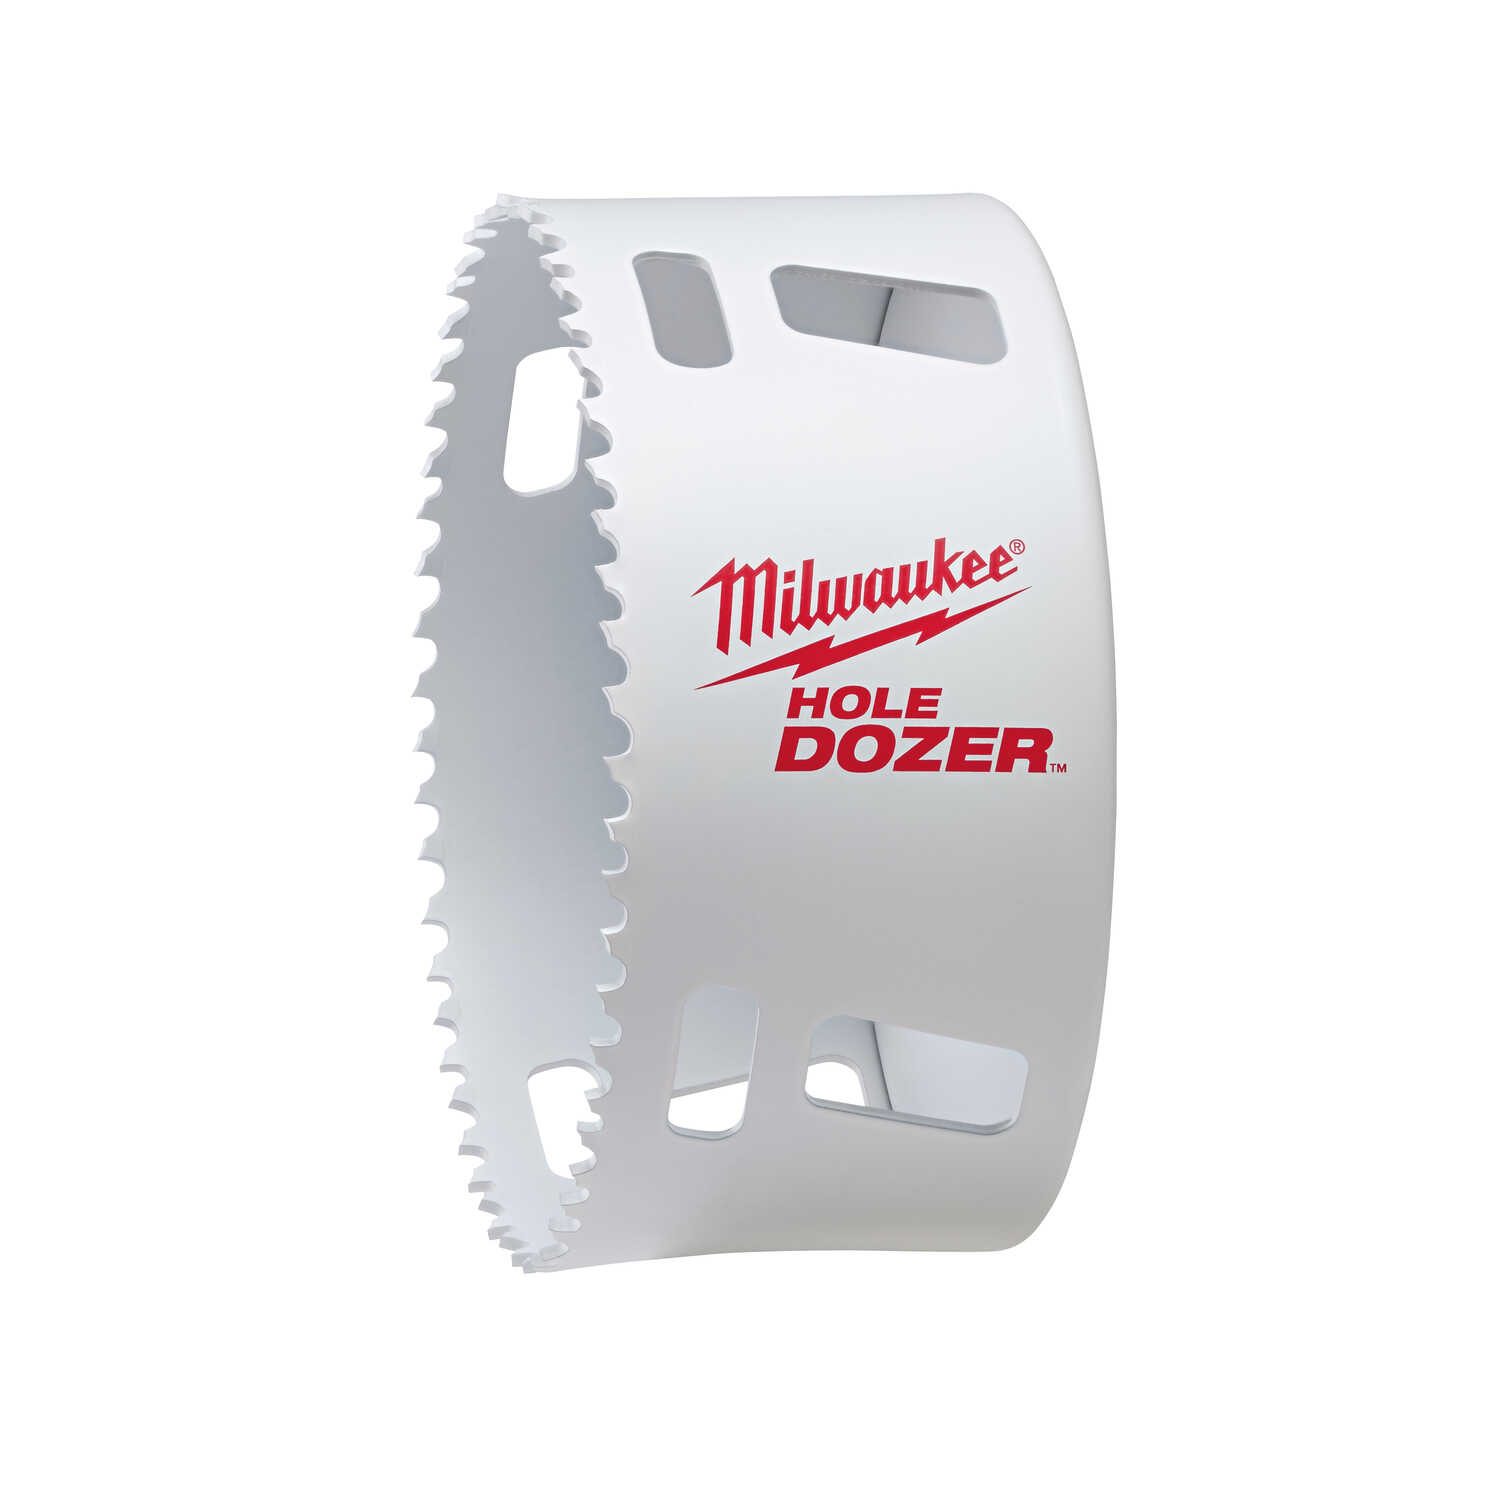 Milwaukee  Hole Dozer  4-1/8 in. Dia. x 2.6 in. L Bi-Metal  Hole Saw  1/4 in. 1 pc.